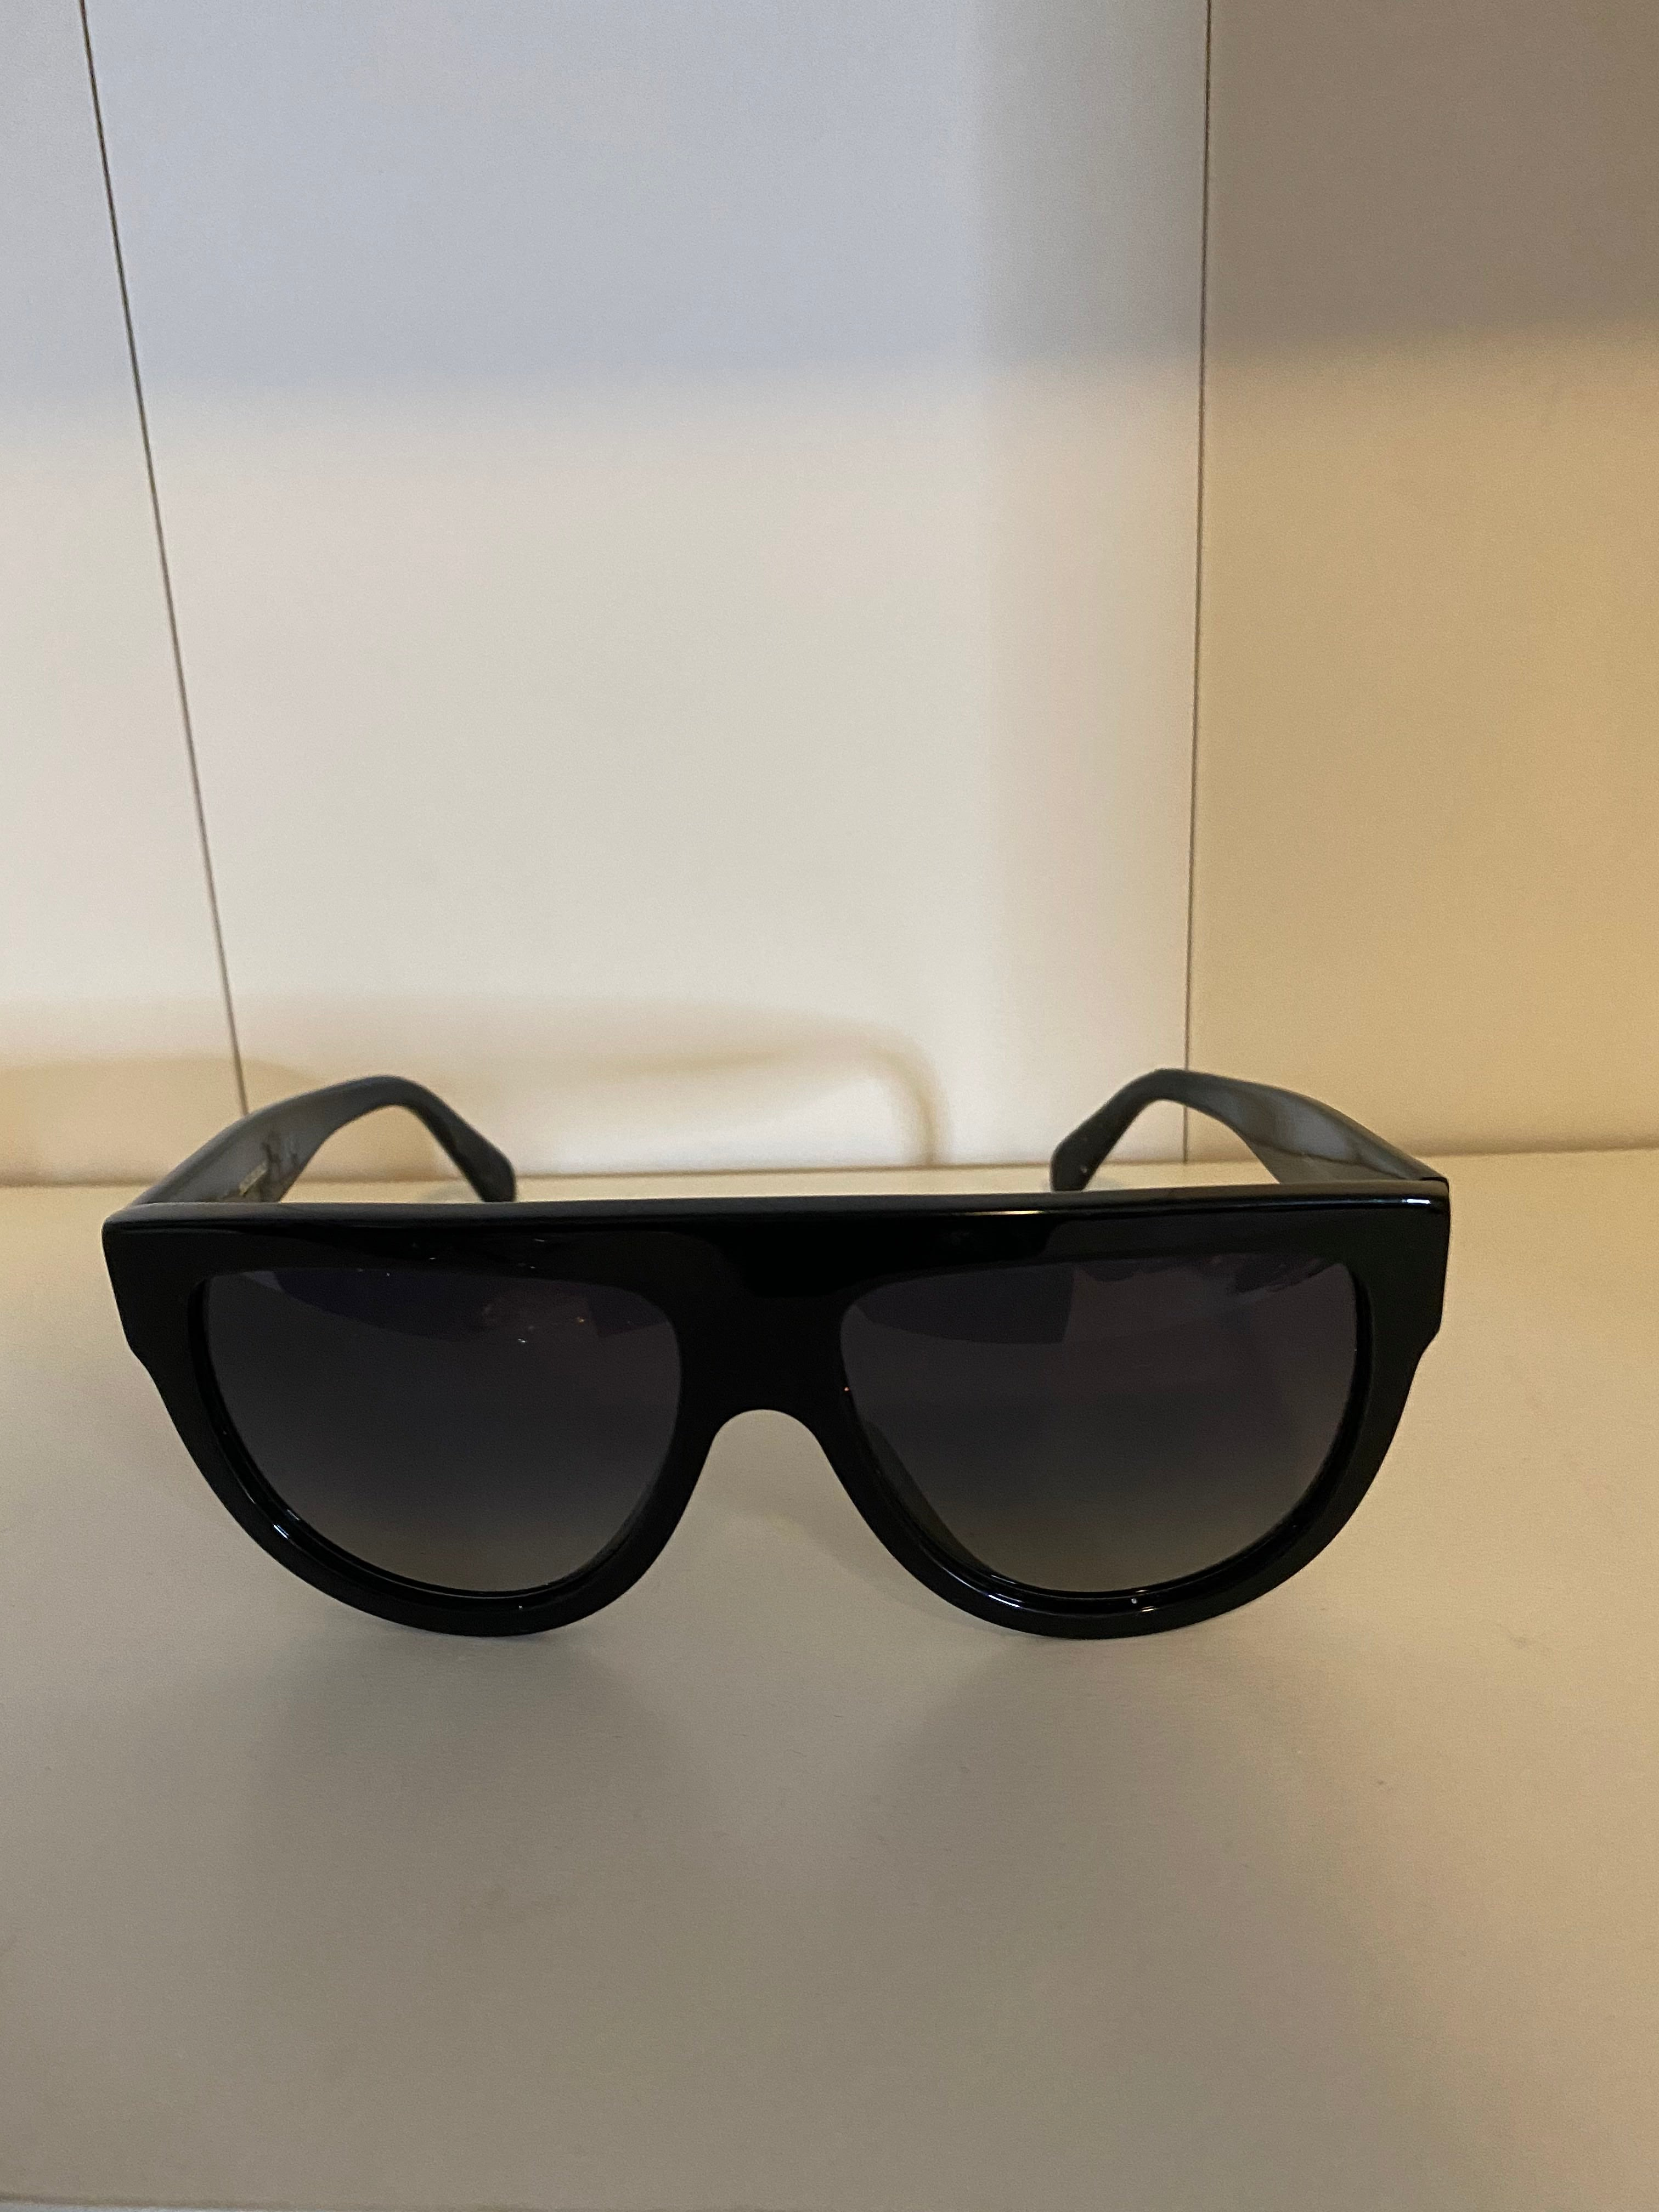 Consignment Item: Flattop Gradient Shield Sunglasses